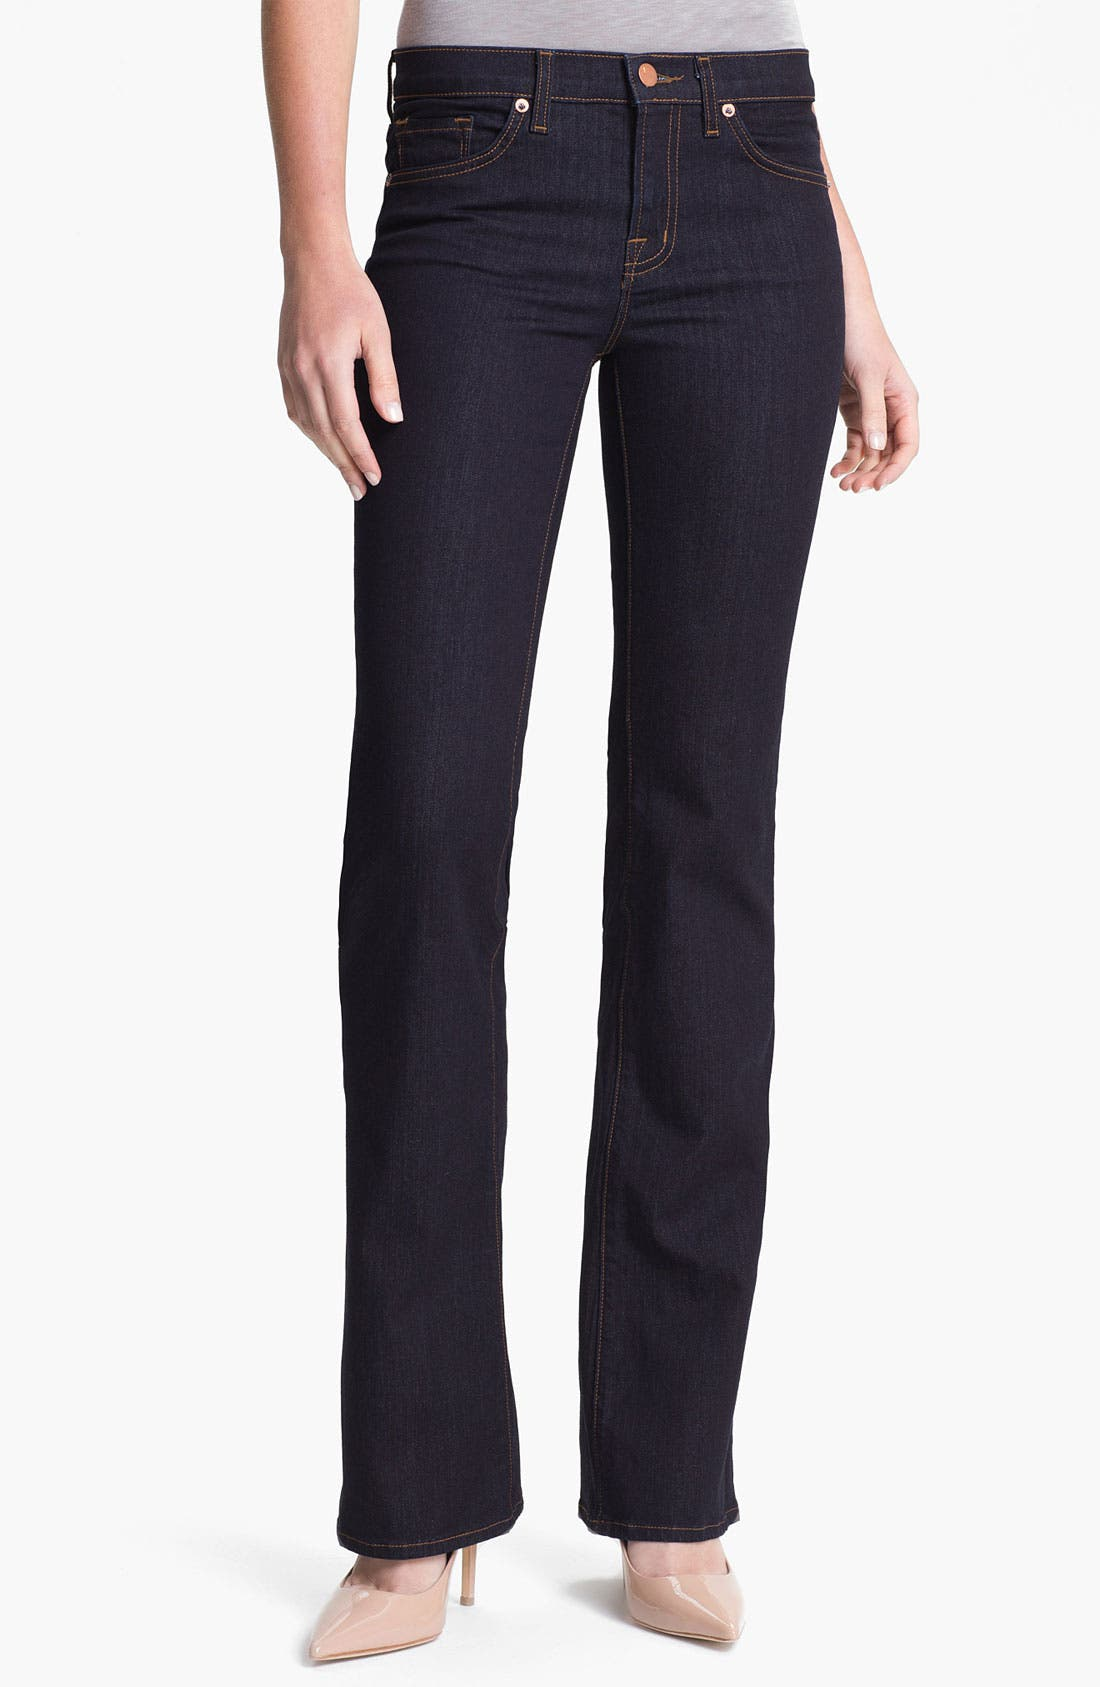 Main Image - J Brand Slim Bootcut Stretch Jeans (Starless Wash)